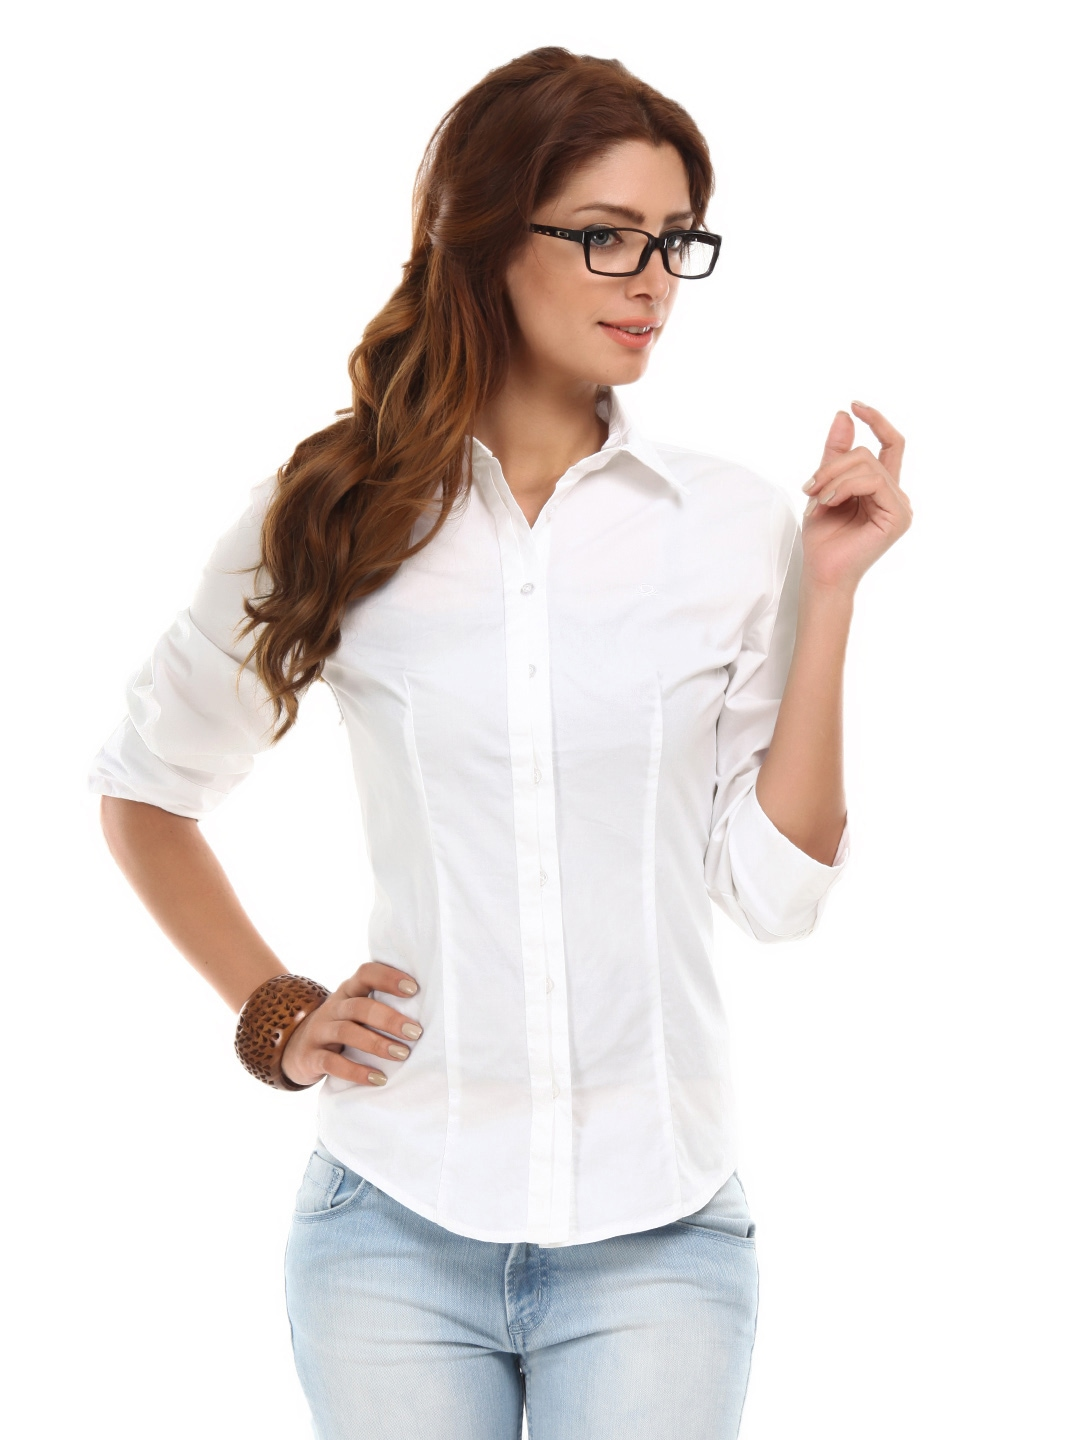 female white shirt artee shirt